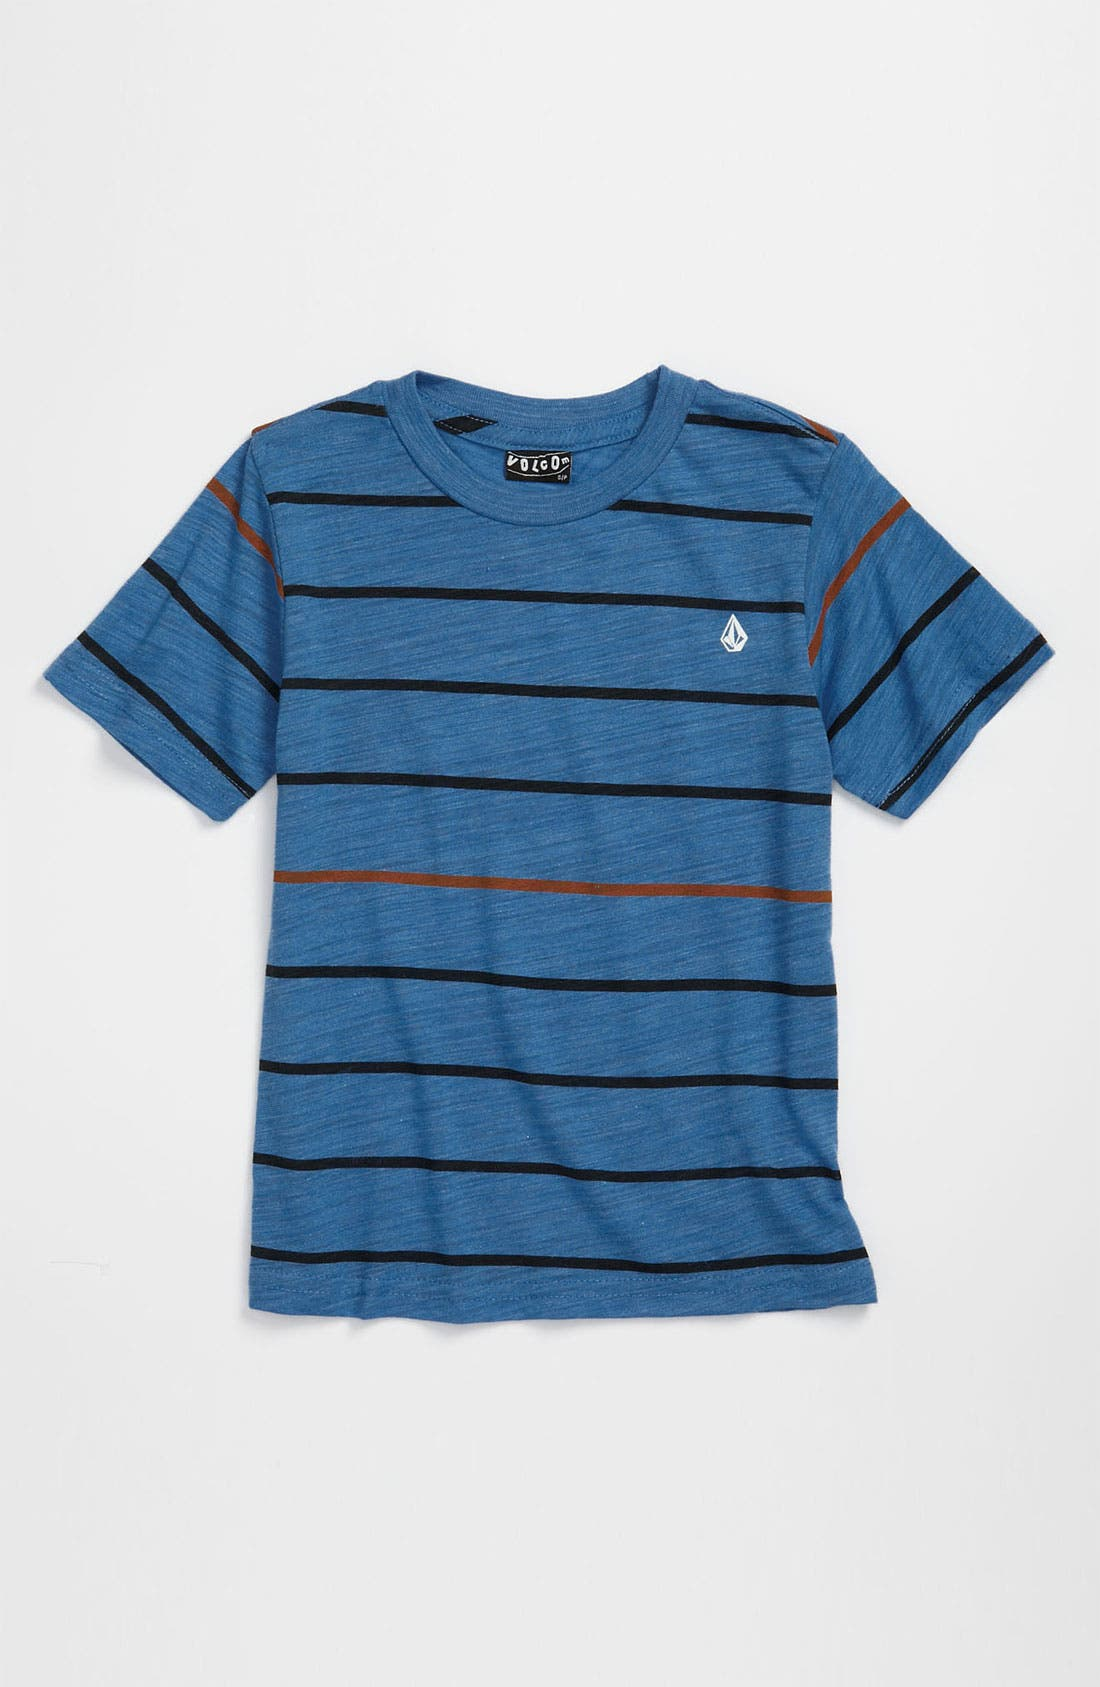 Alternate Image 1 Selected - Volcom 'Knock Stripe' T-Shirt (Little Boys)